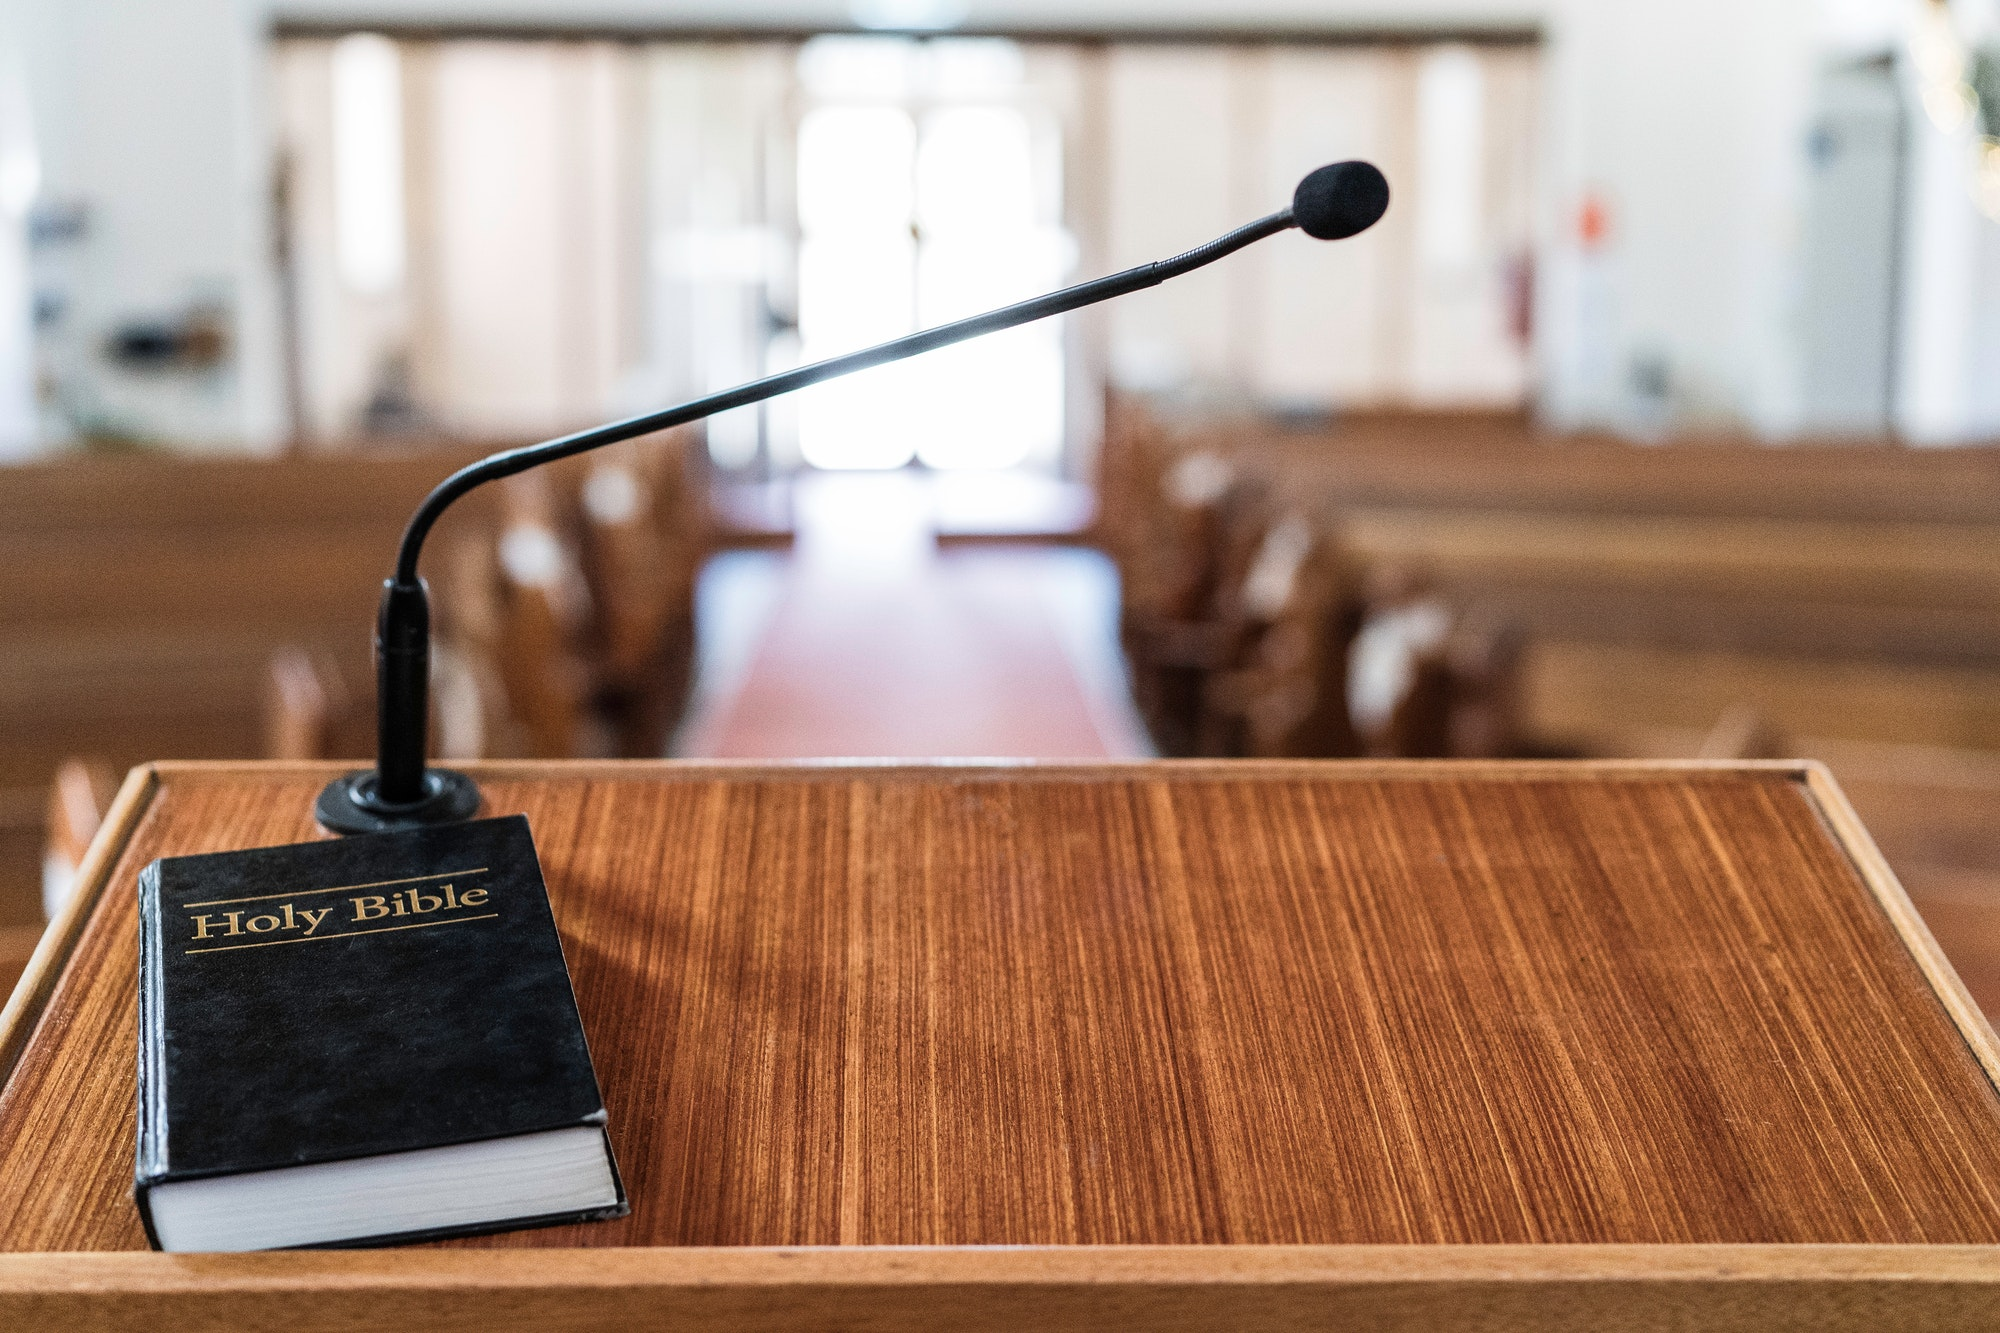 Bible on church pulpit, with light coming through the front doors